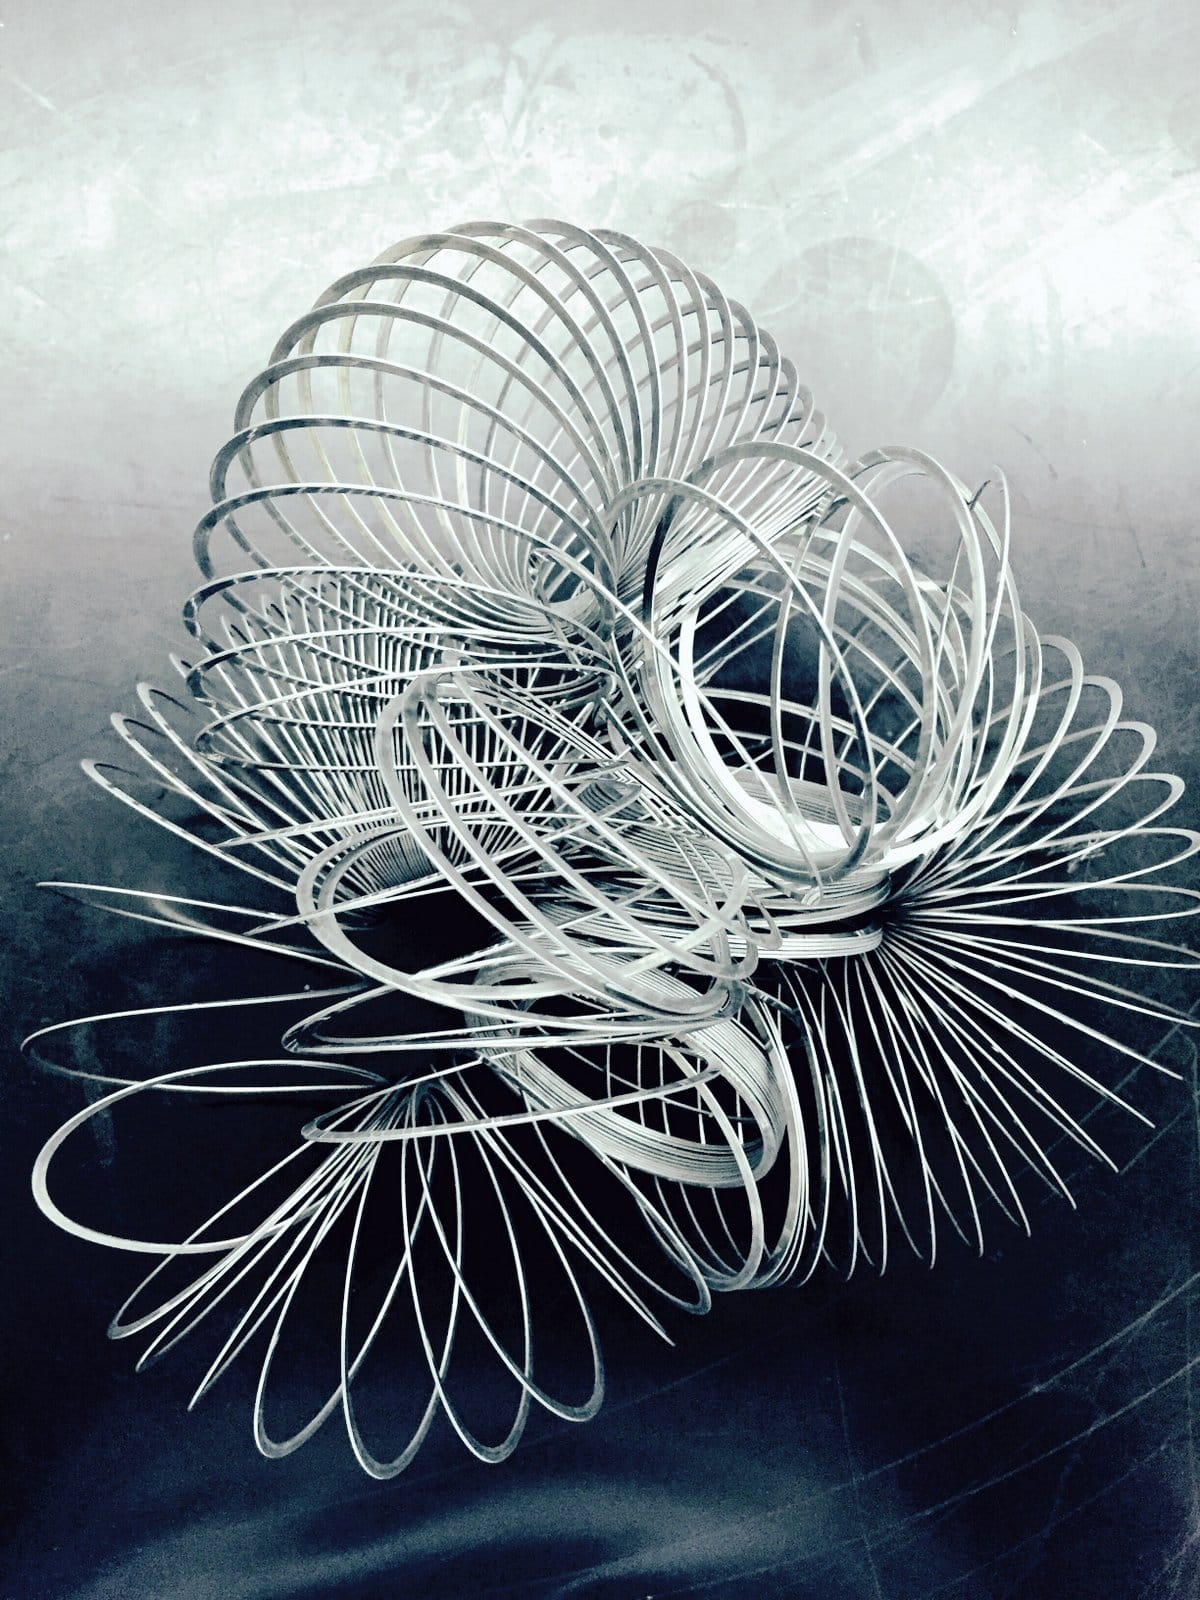 A jumbled up snarled metal Slinky toy